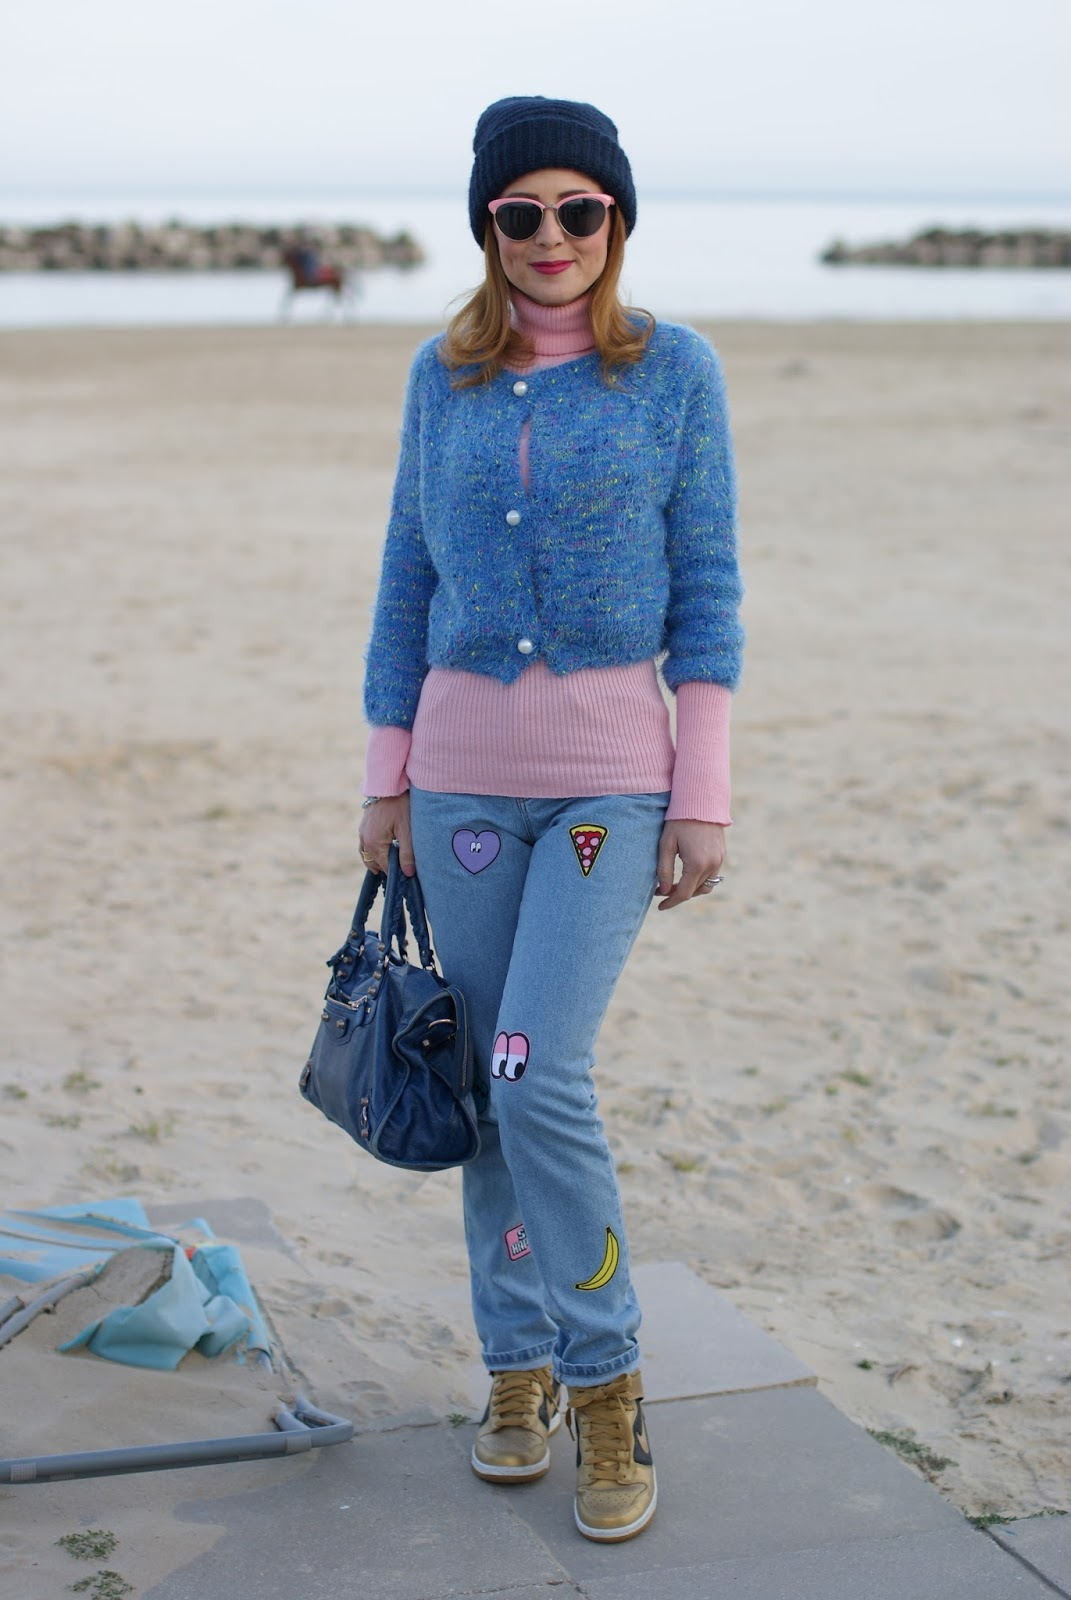 Mom patched jeans, Nike golden sneakers, Balenciaga bag on Fashion and Cookies fashion blog, fashion blogger style